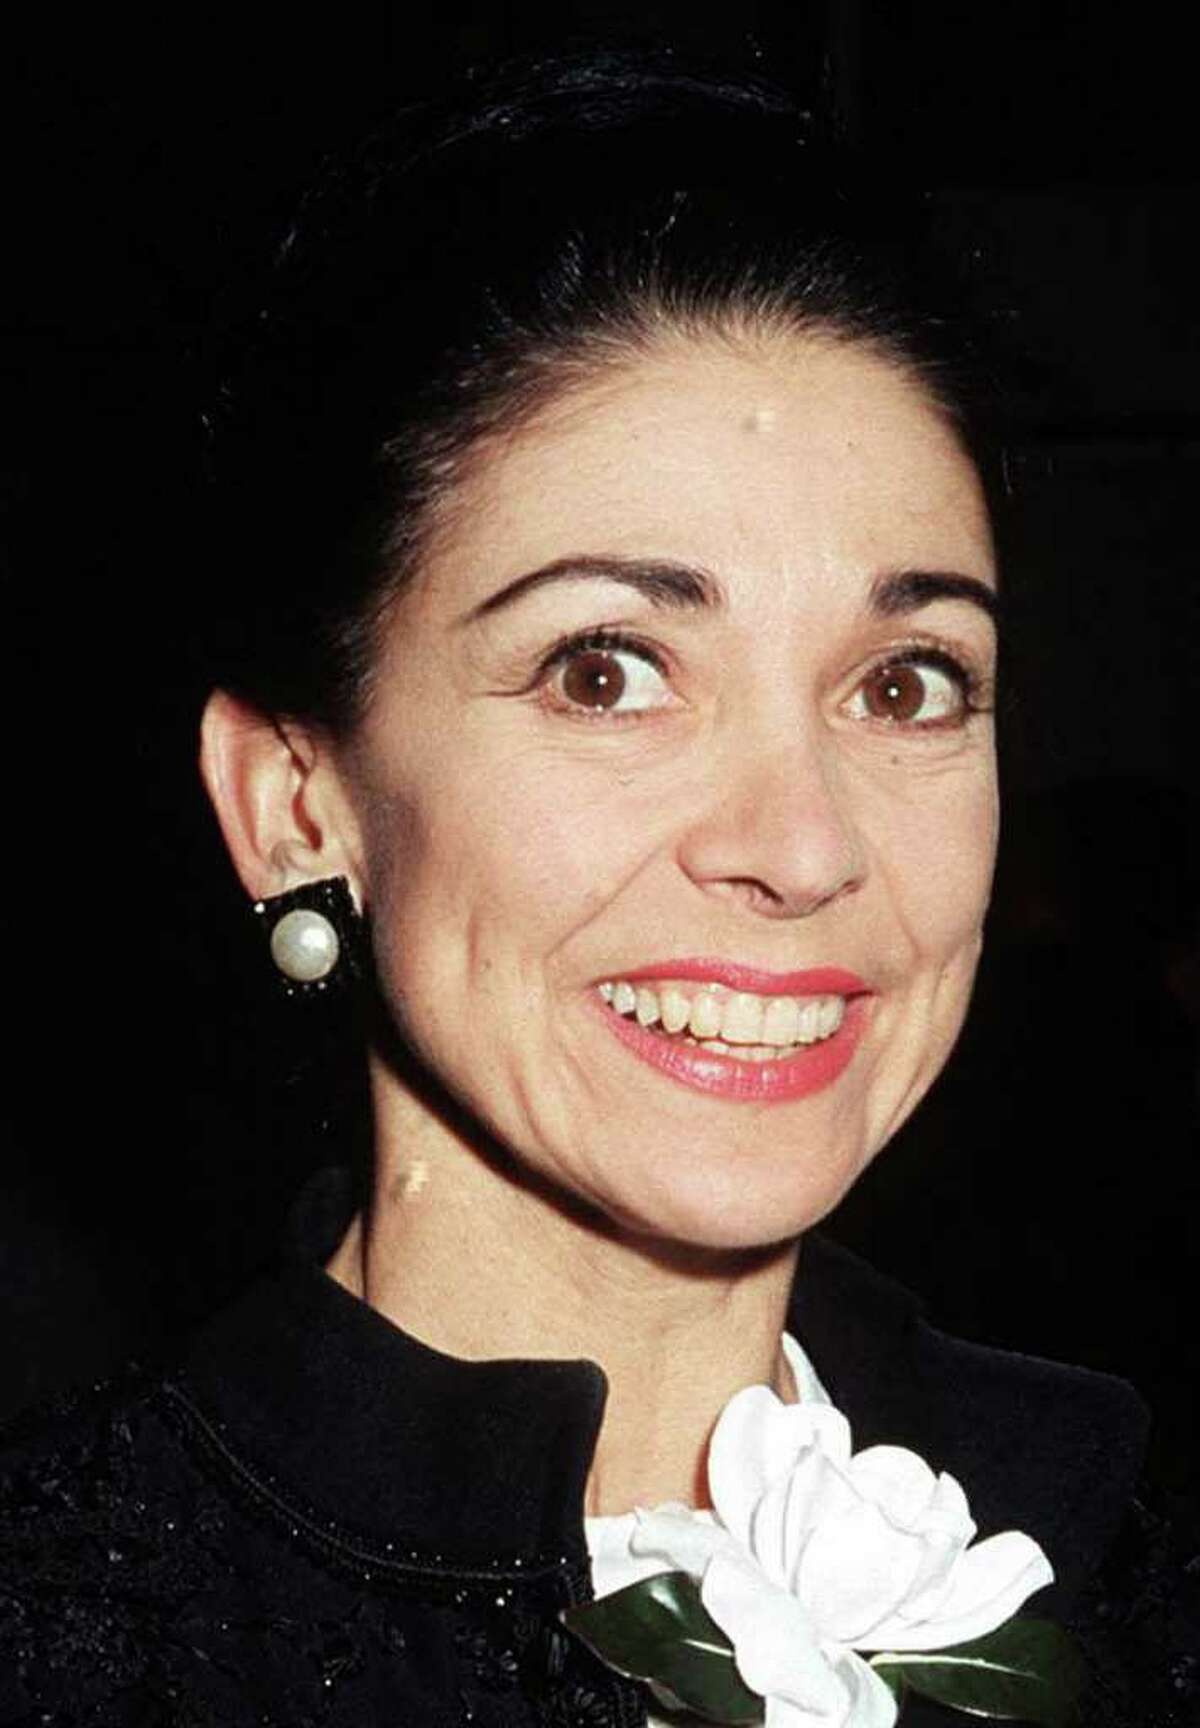 In this Sept. 18, 1968 file photo, British ballerina Margot Fonteyn in London. British ballerina Margot Fonteyn was heavily involved in a plot with Fidel Castro to overthrow Panama's government, previously secret files revealed. (AP Photo/PA, File)